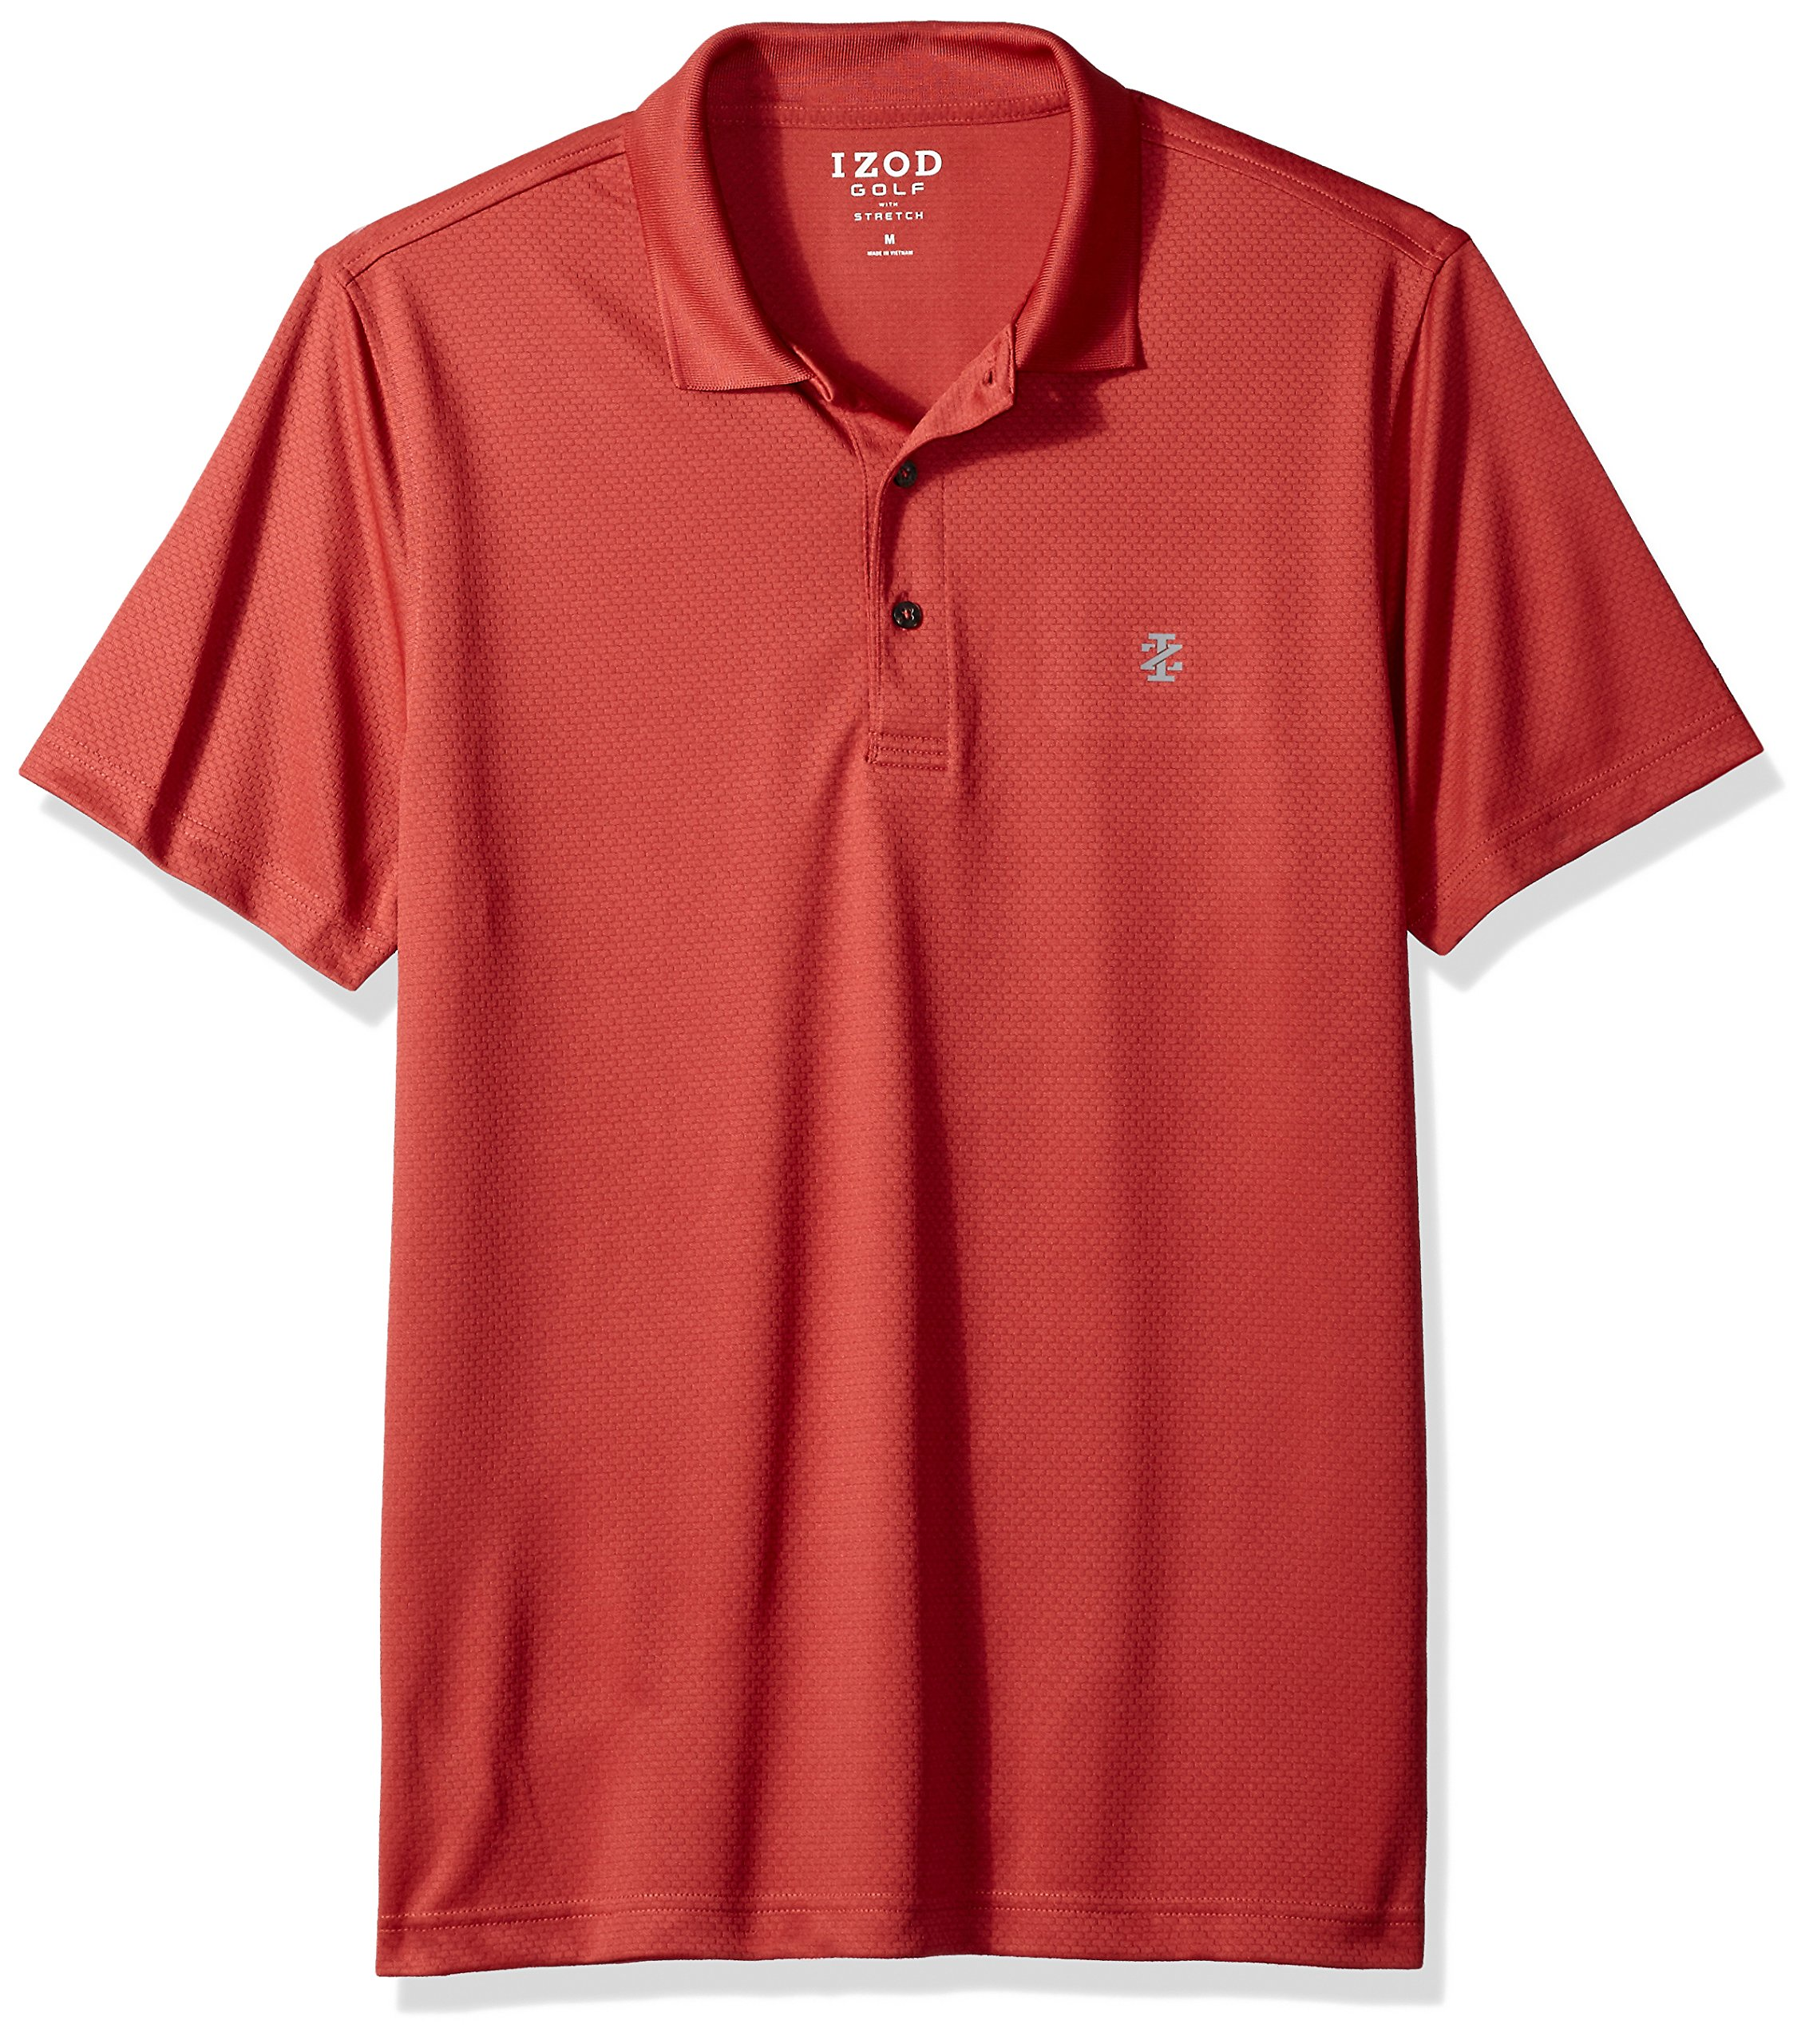 IZOD Men's Golf Title Holder Short Sleeve Polo, Saltwater Red 2, S by IZOD